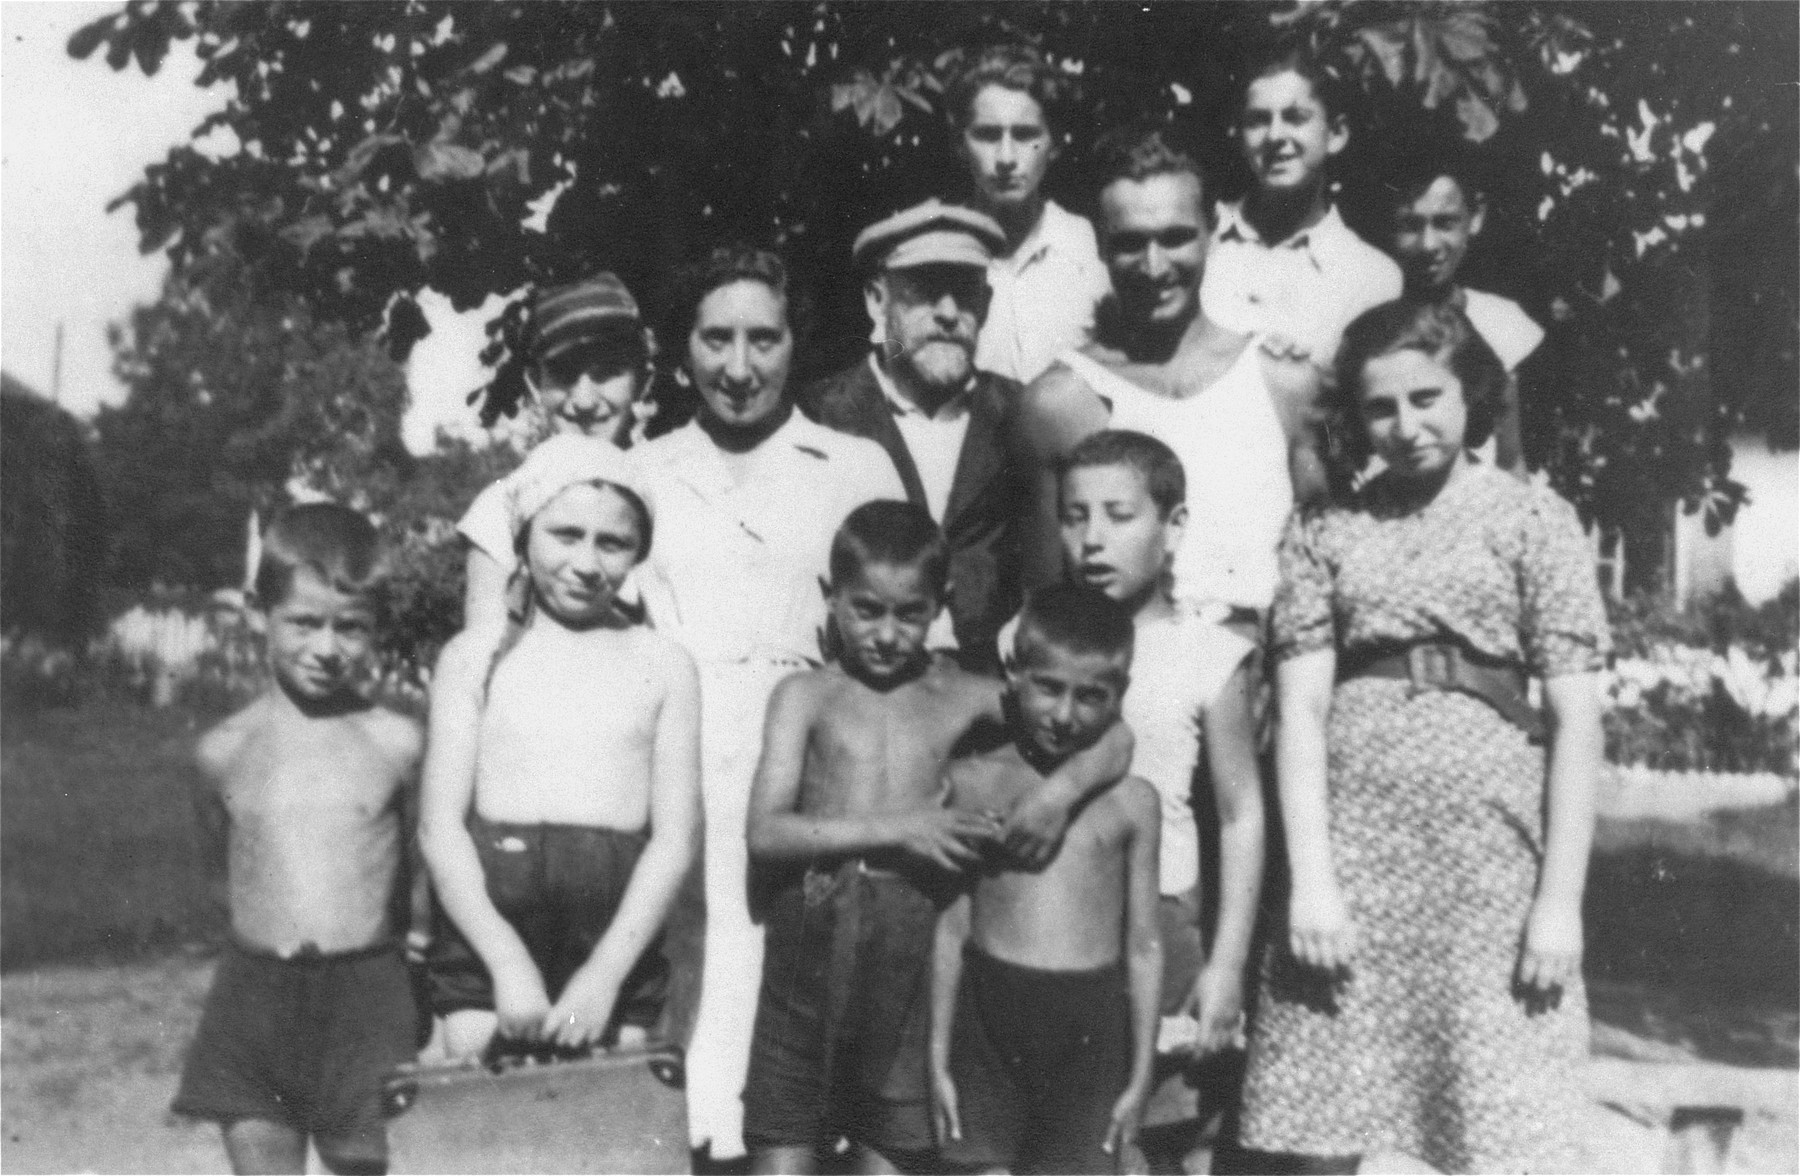 Janusz Korczak and Sabina Lejzerowicz pose with children and staff members at the Rozyczka farm, a summer retreat for the children who reside at the Krochmalna Street orphanage in Warsaw.